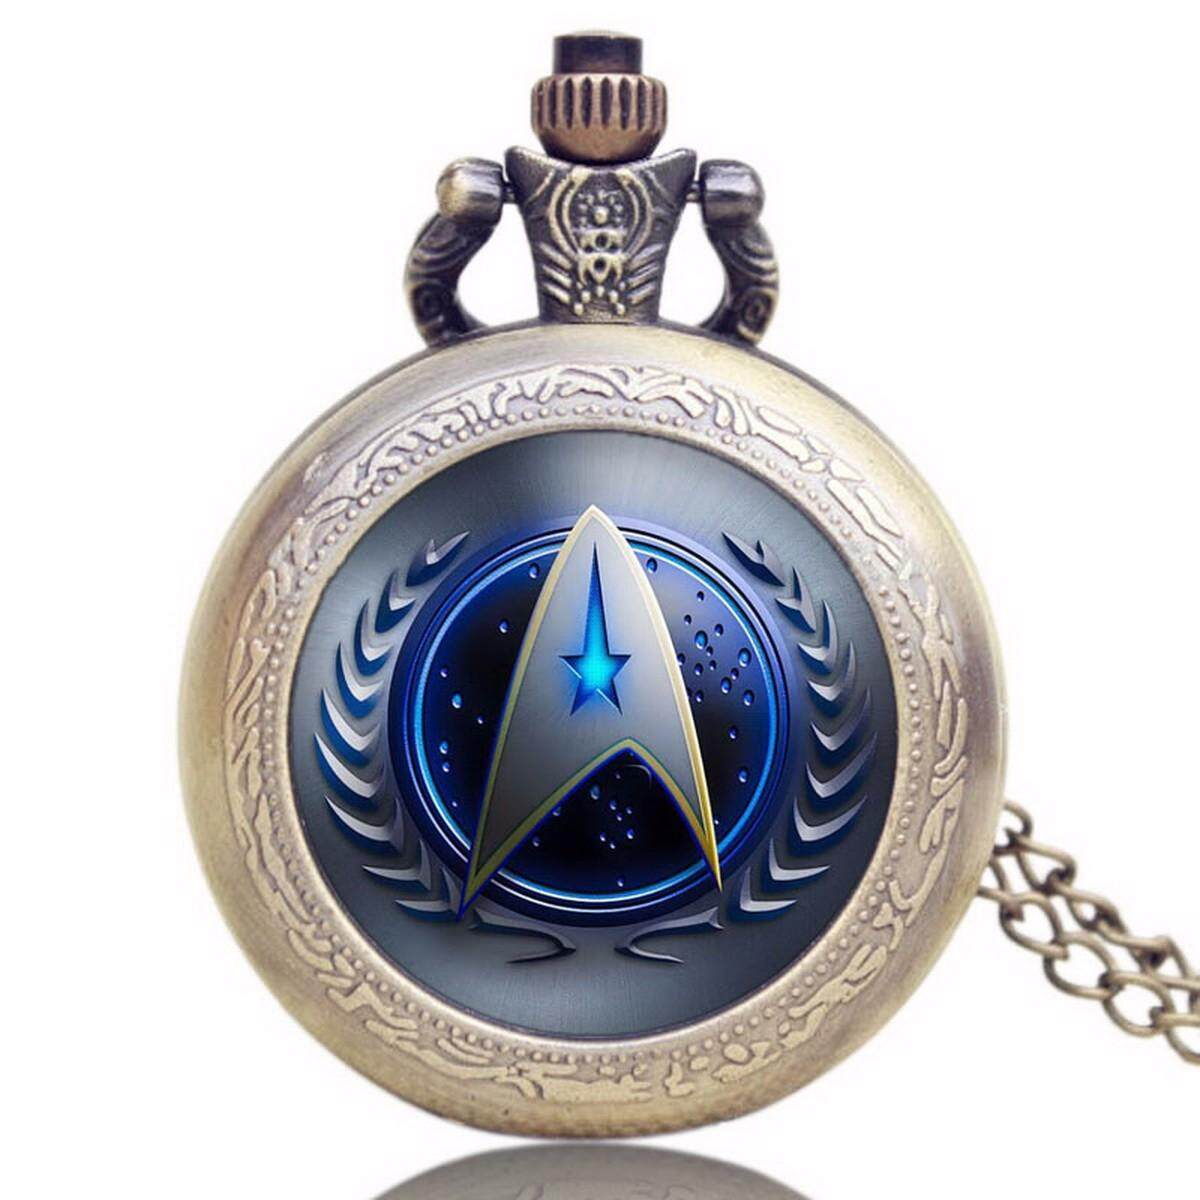 Unique Chic Style Star Trek Theme Pocket Watch with Necklace Chain, High Quality Fob Watch for Men, Women Blue Malaysia